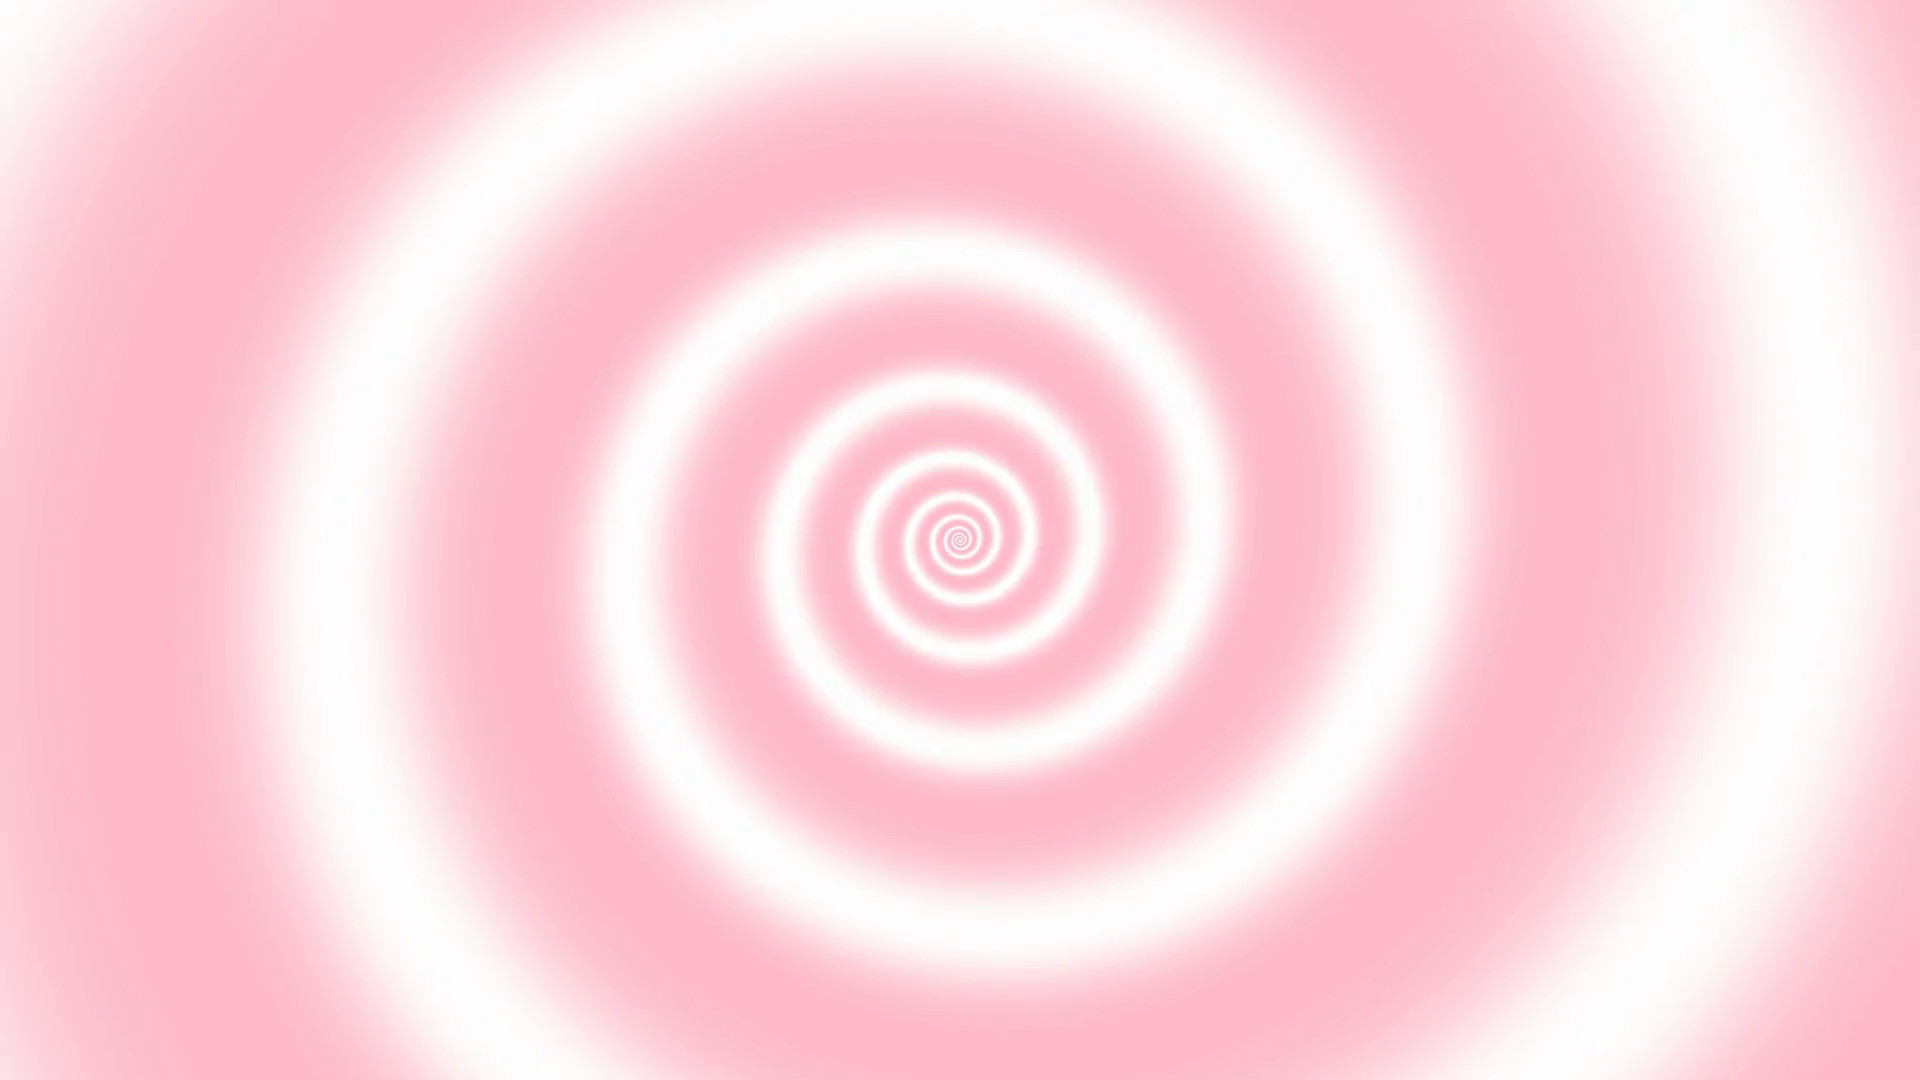 Subscription Library Hypnotic soft pink-white spiral background, loop, PAL